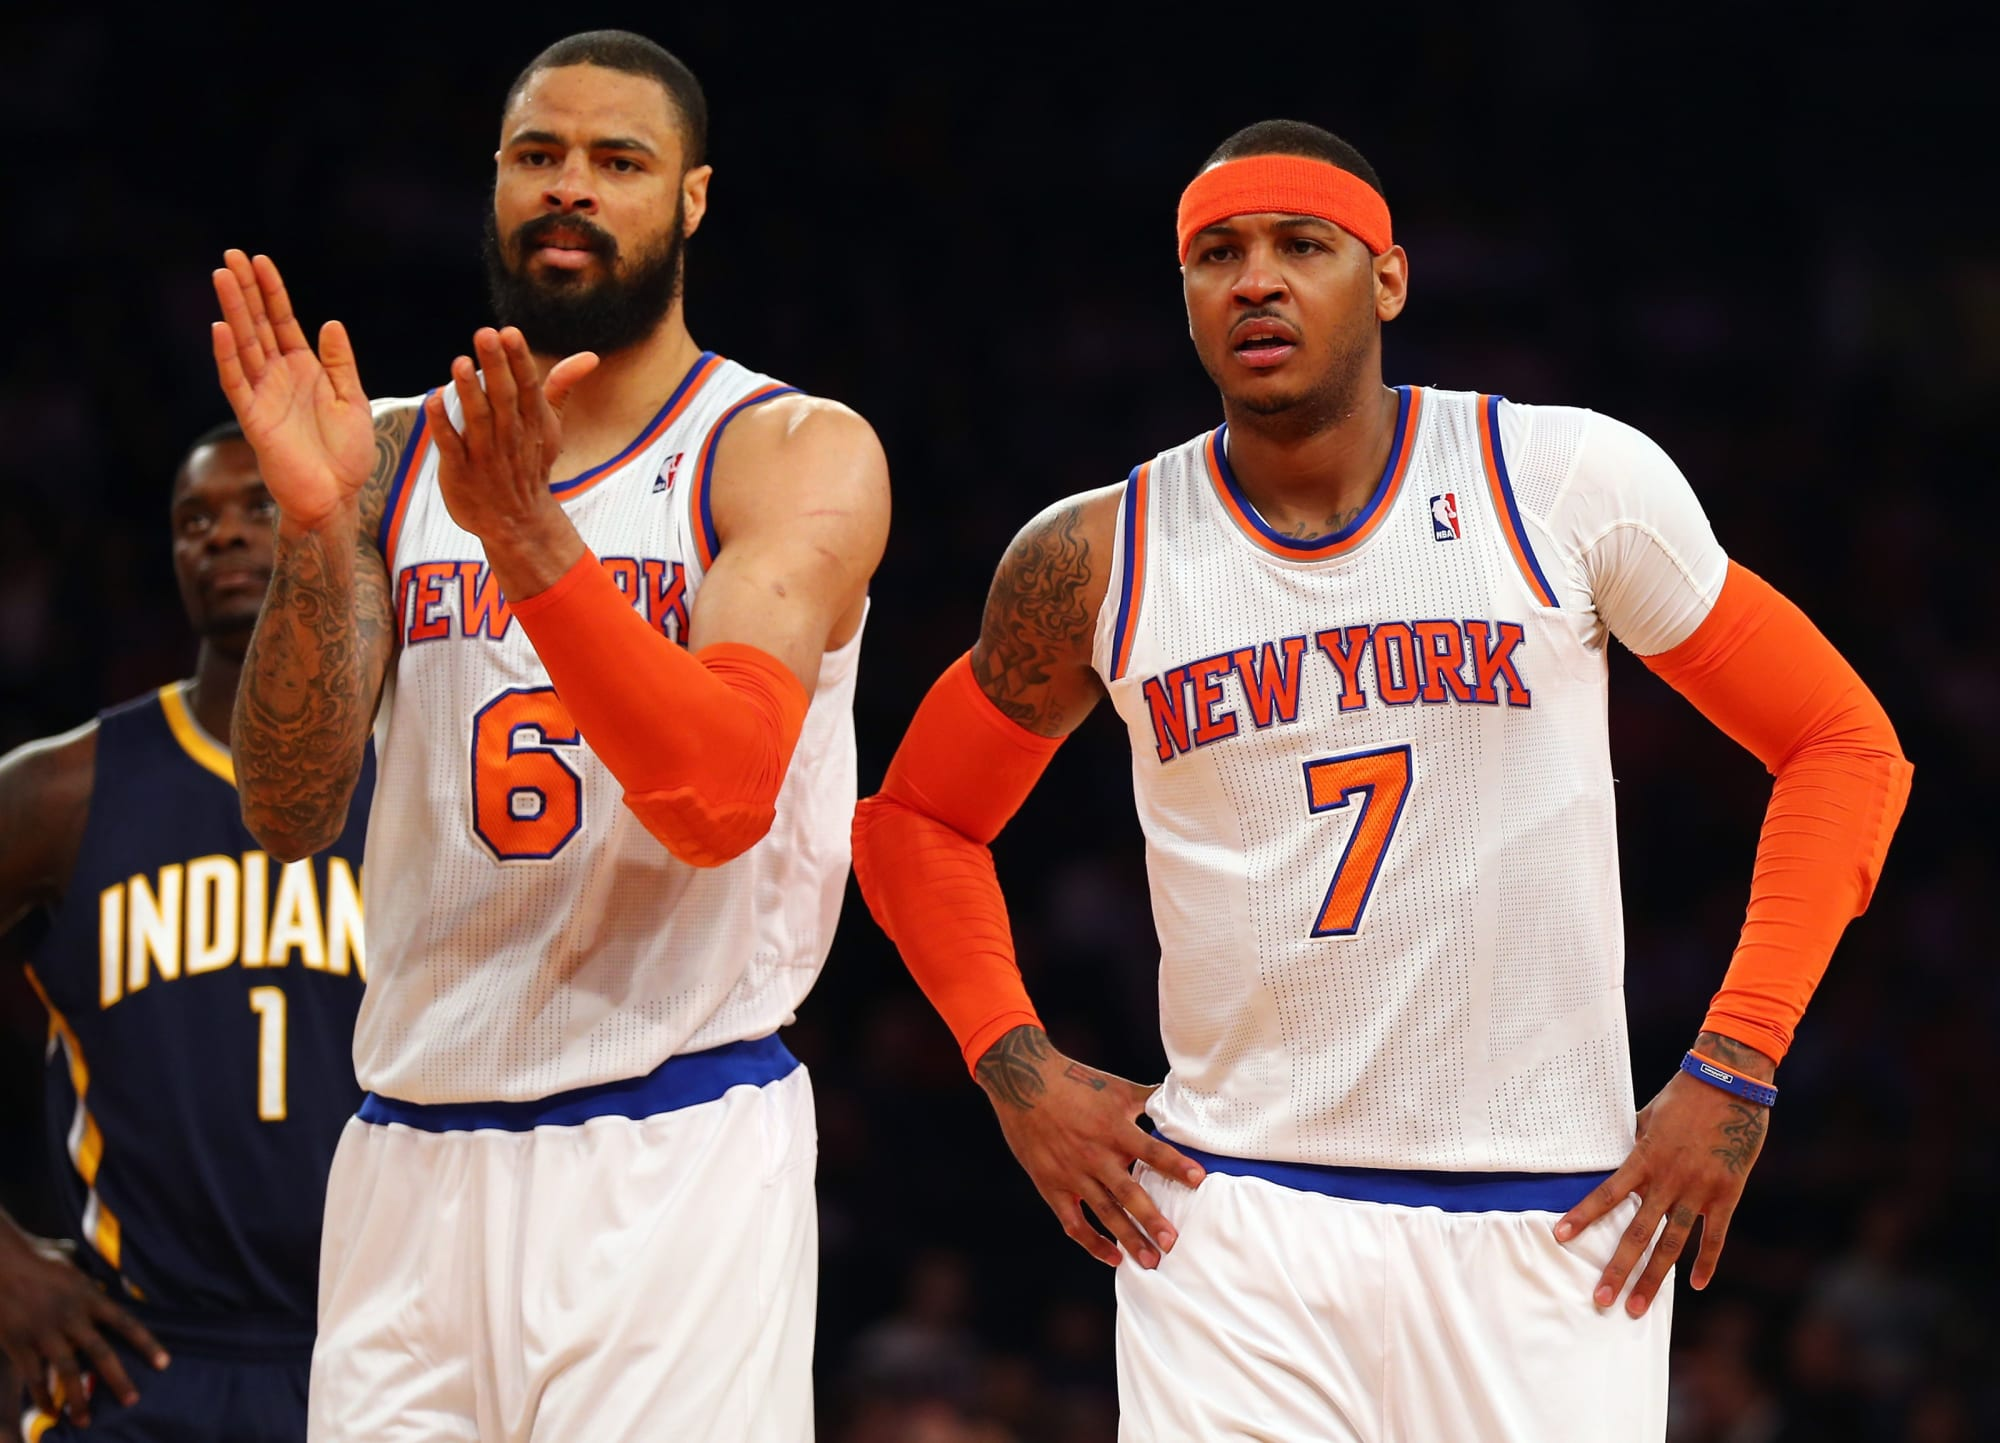 New York Knicks: Ranking the 5 most disappointing seasons since 2010